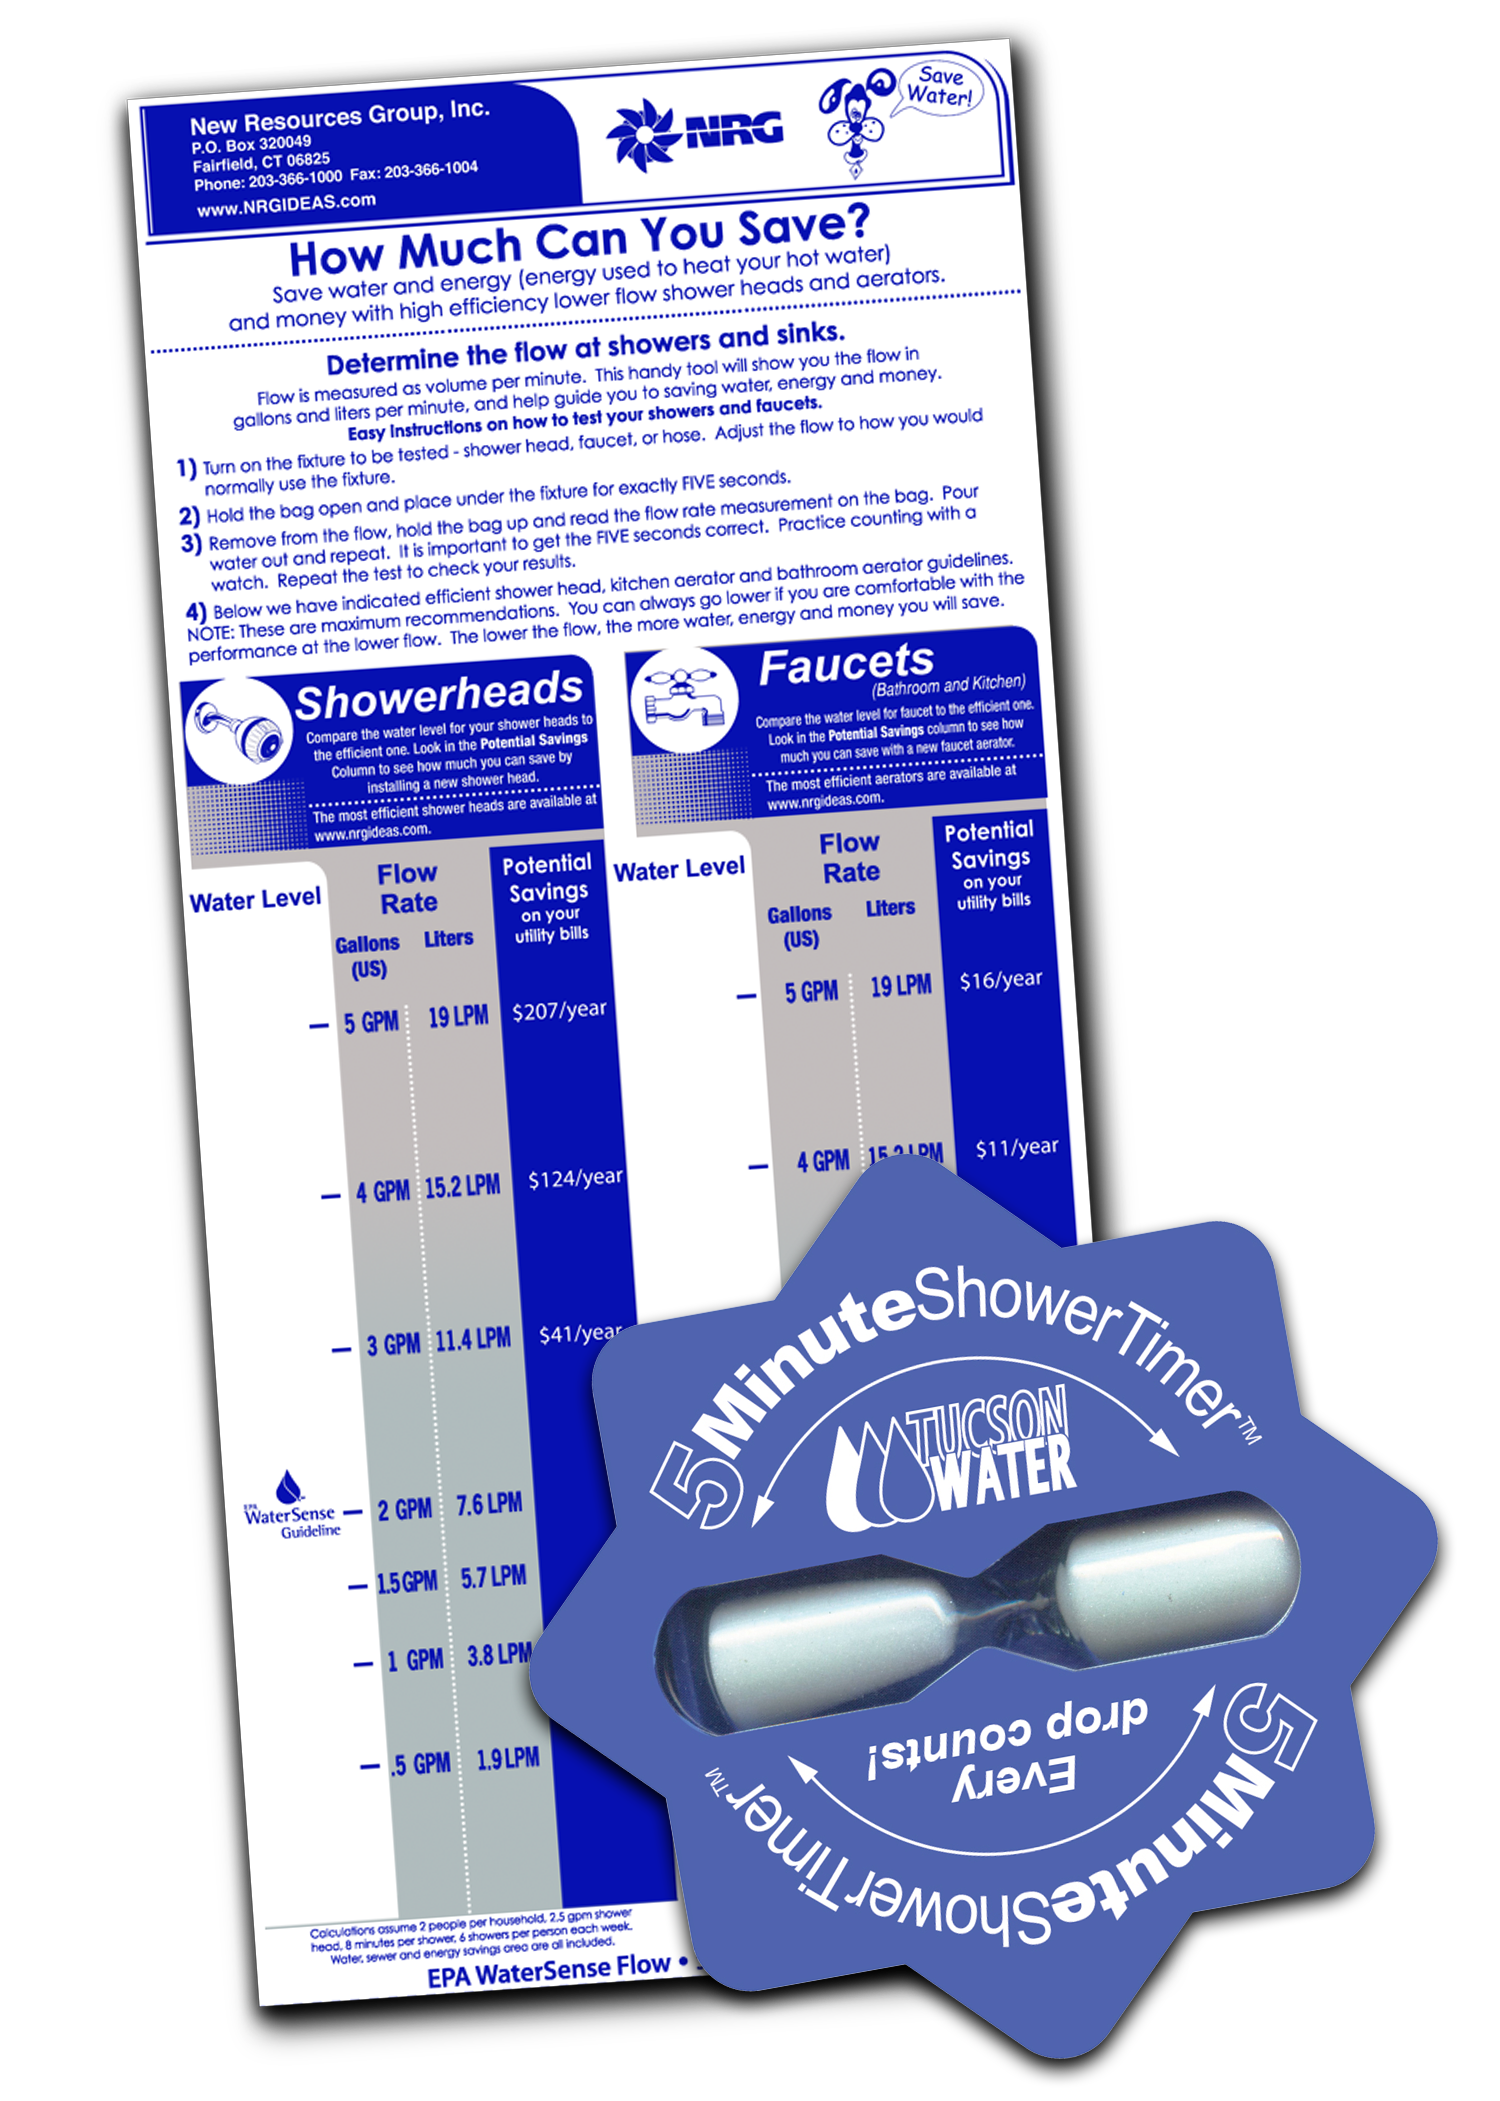 Each student receives a flow rate bag to calculate home shower and faucet water use, and a shower timer encouraging reduced water use by limiting showers to 5 minutes or less.